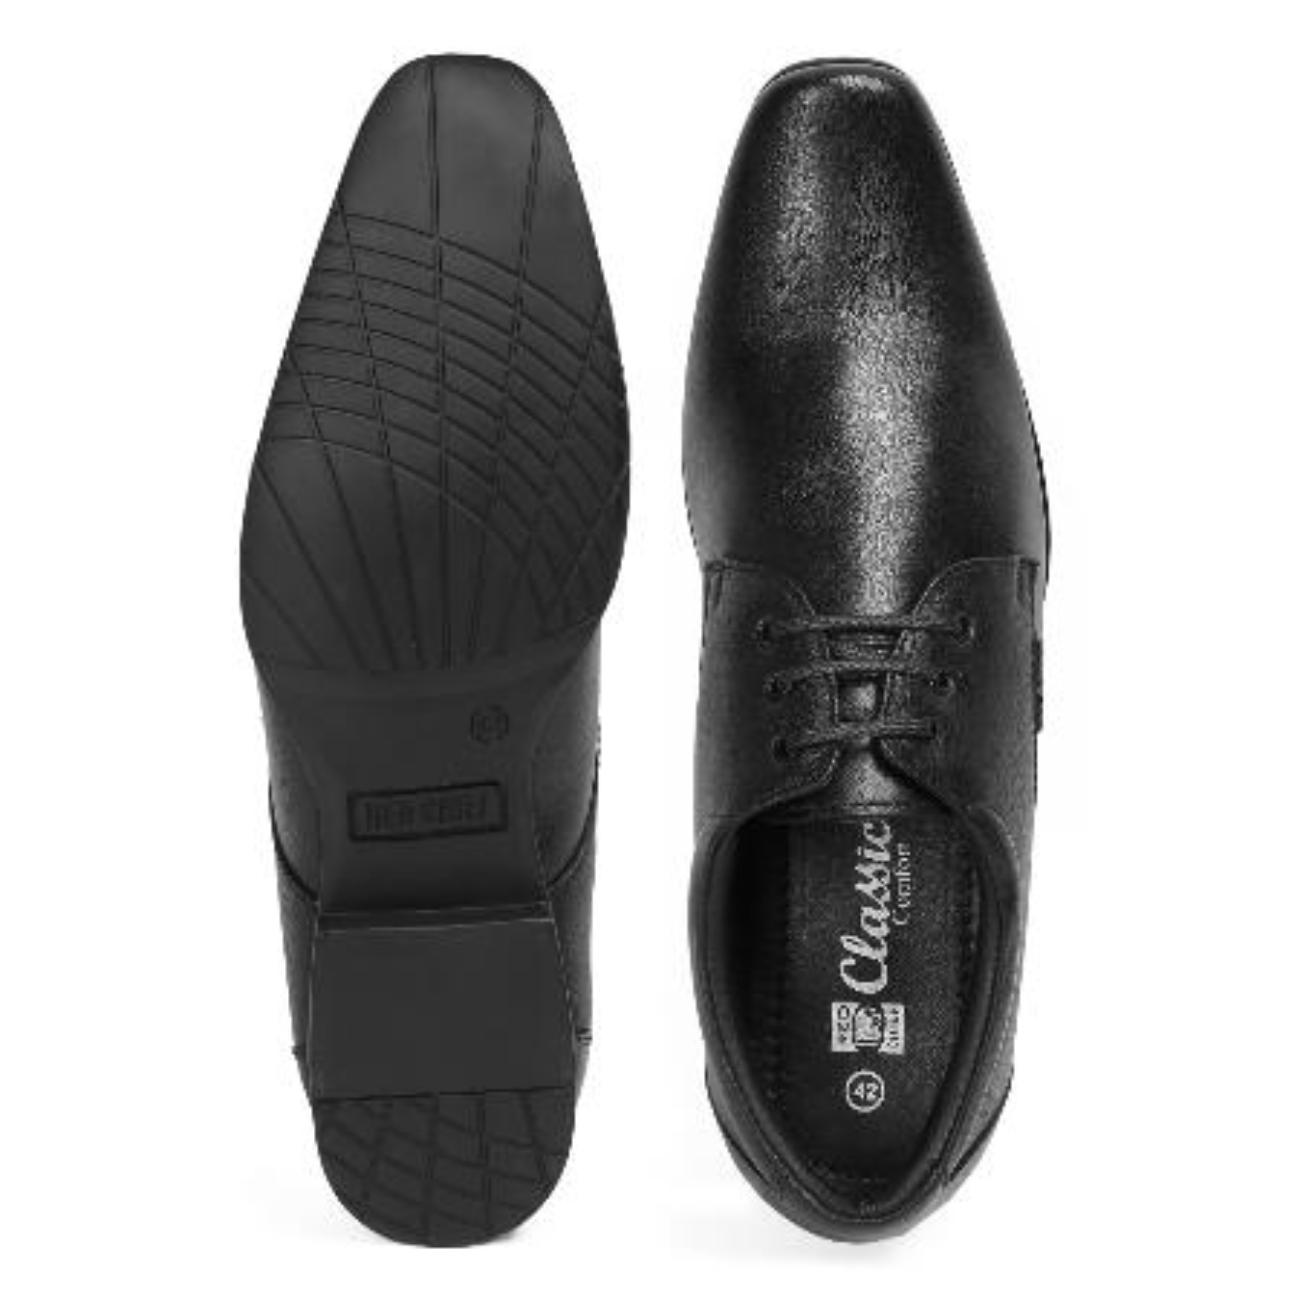 black formal shoes by red chief